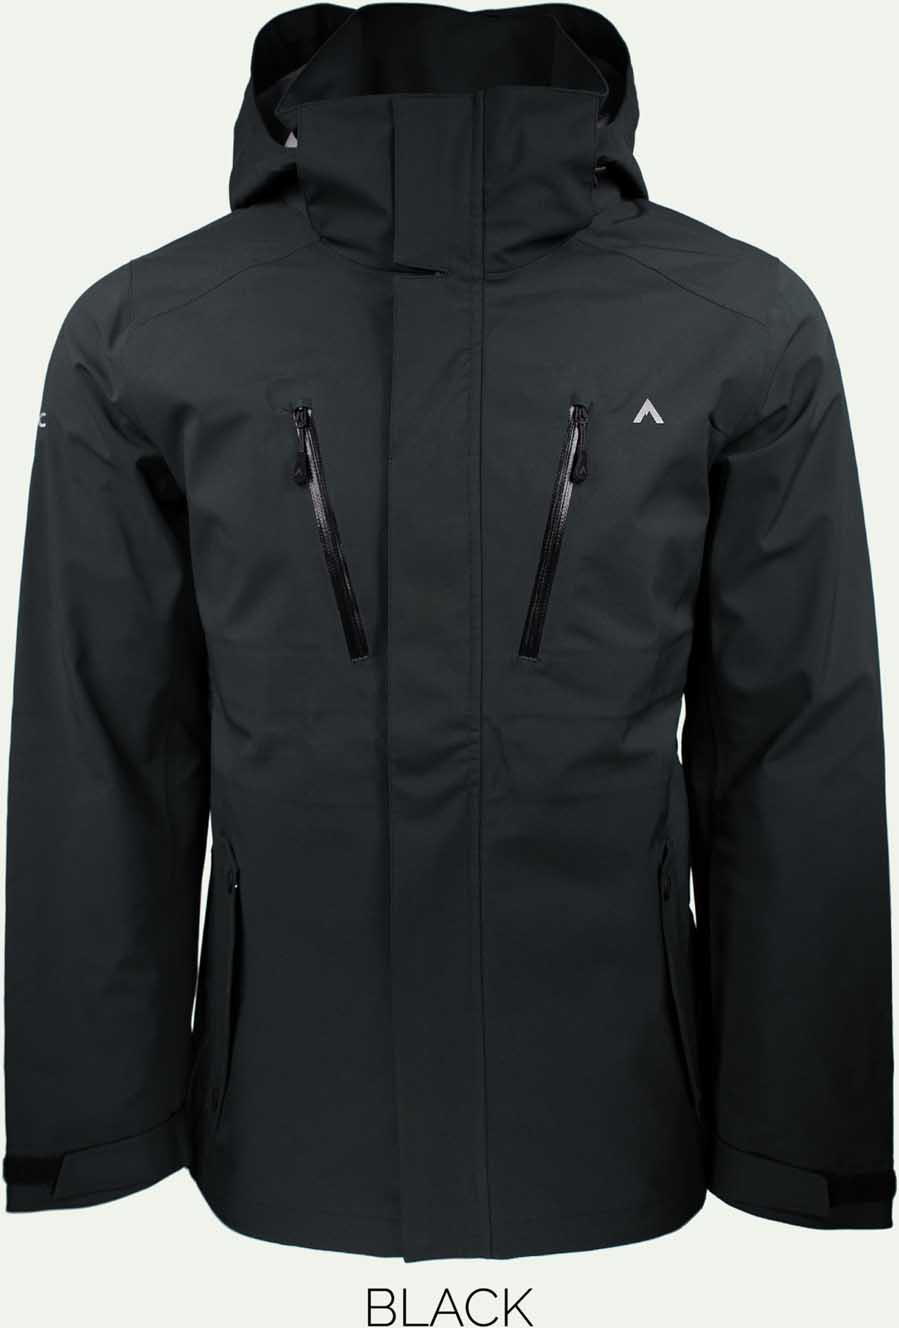 image terracea-station-jacket-copy-jpg